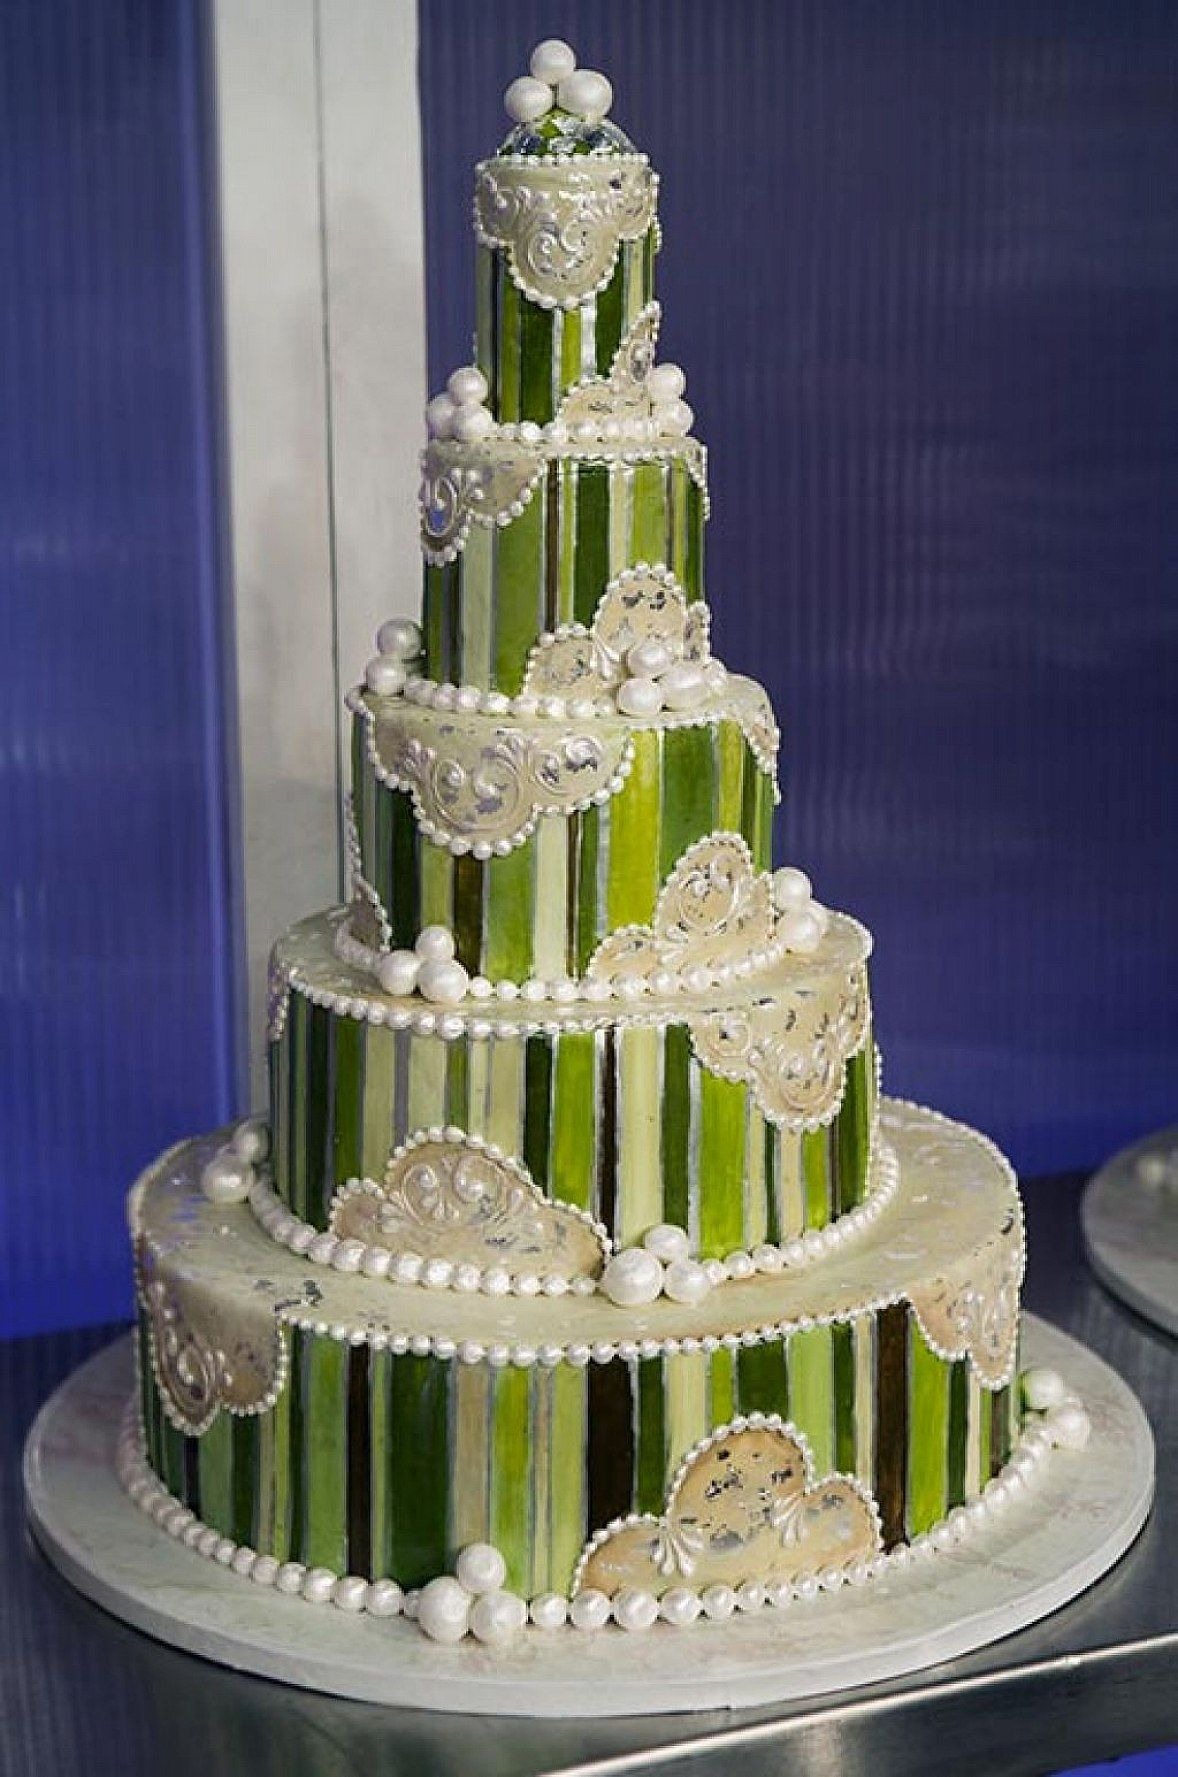 Average Wedding Cake Cost.Average Cost For A Wedding Cake Wedding Cake Average Cost Average